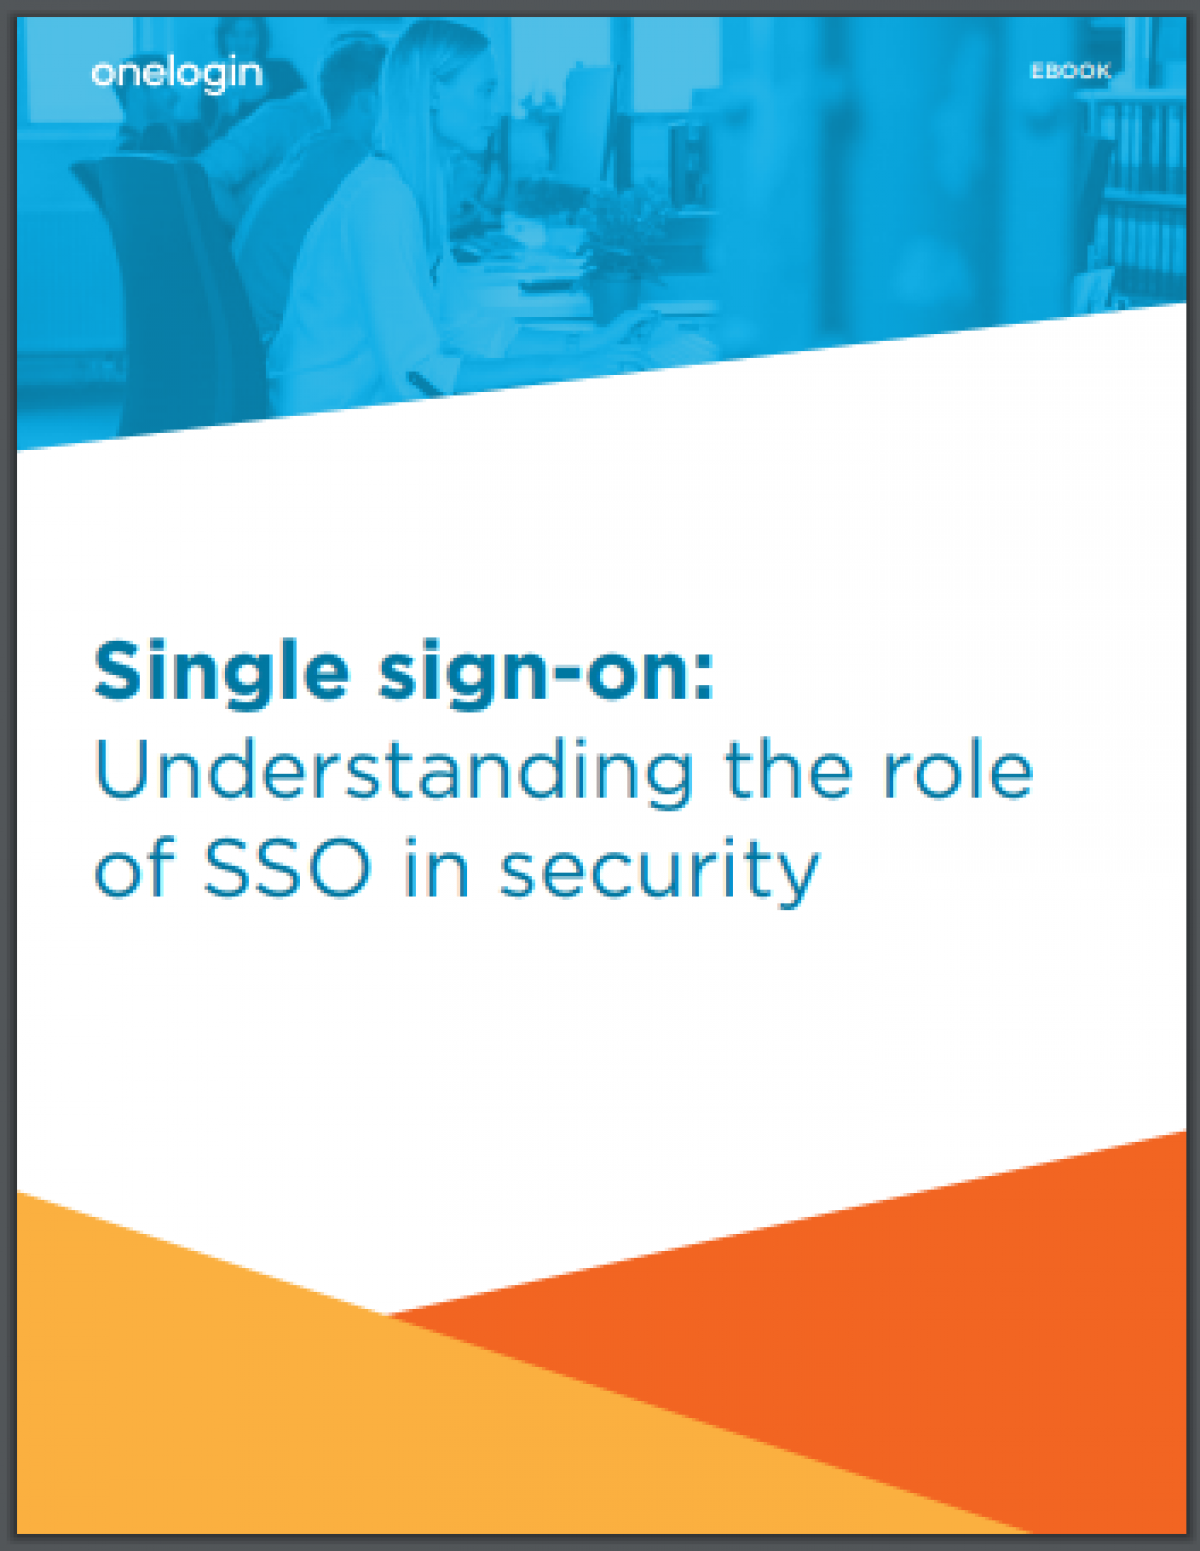 Understanding the role of single sign-on in security